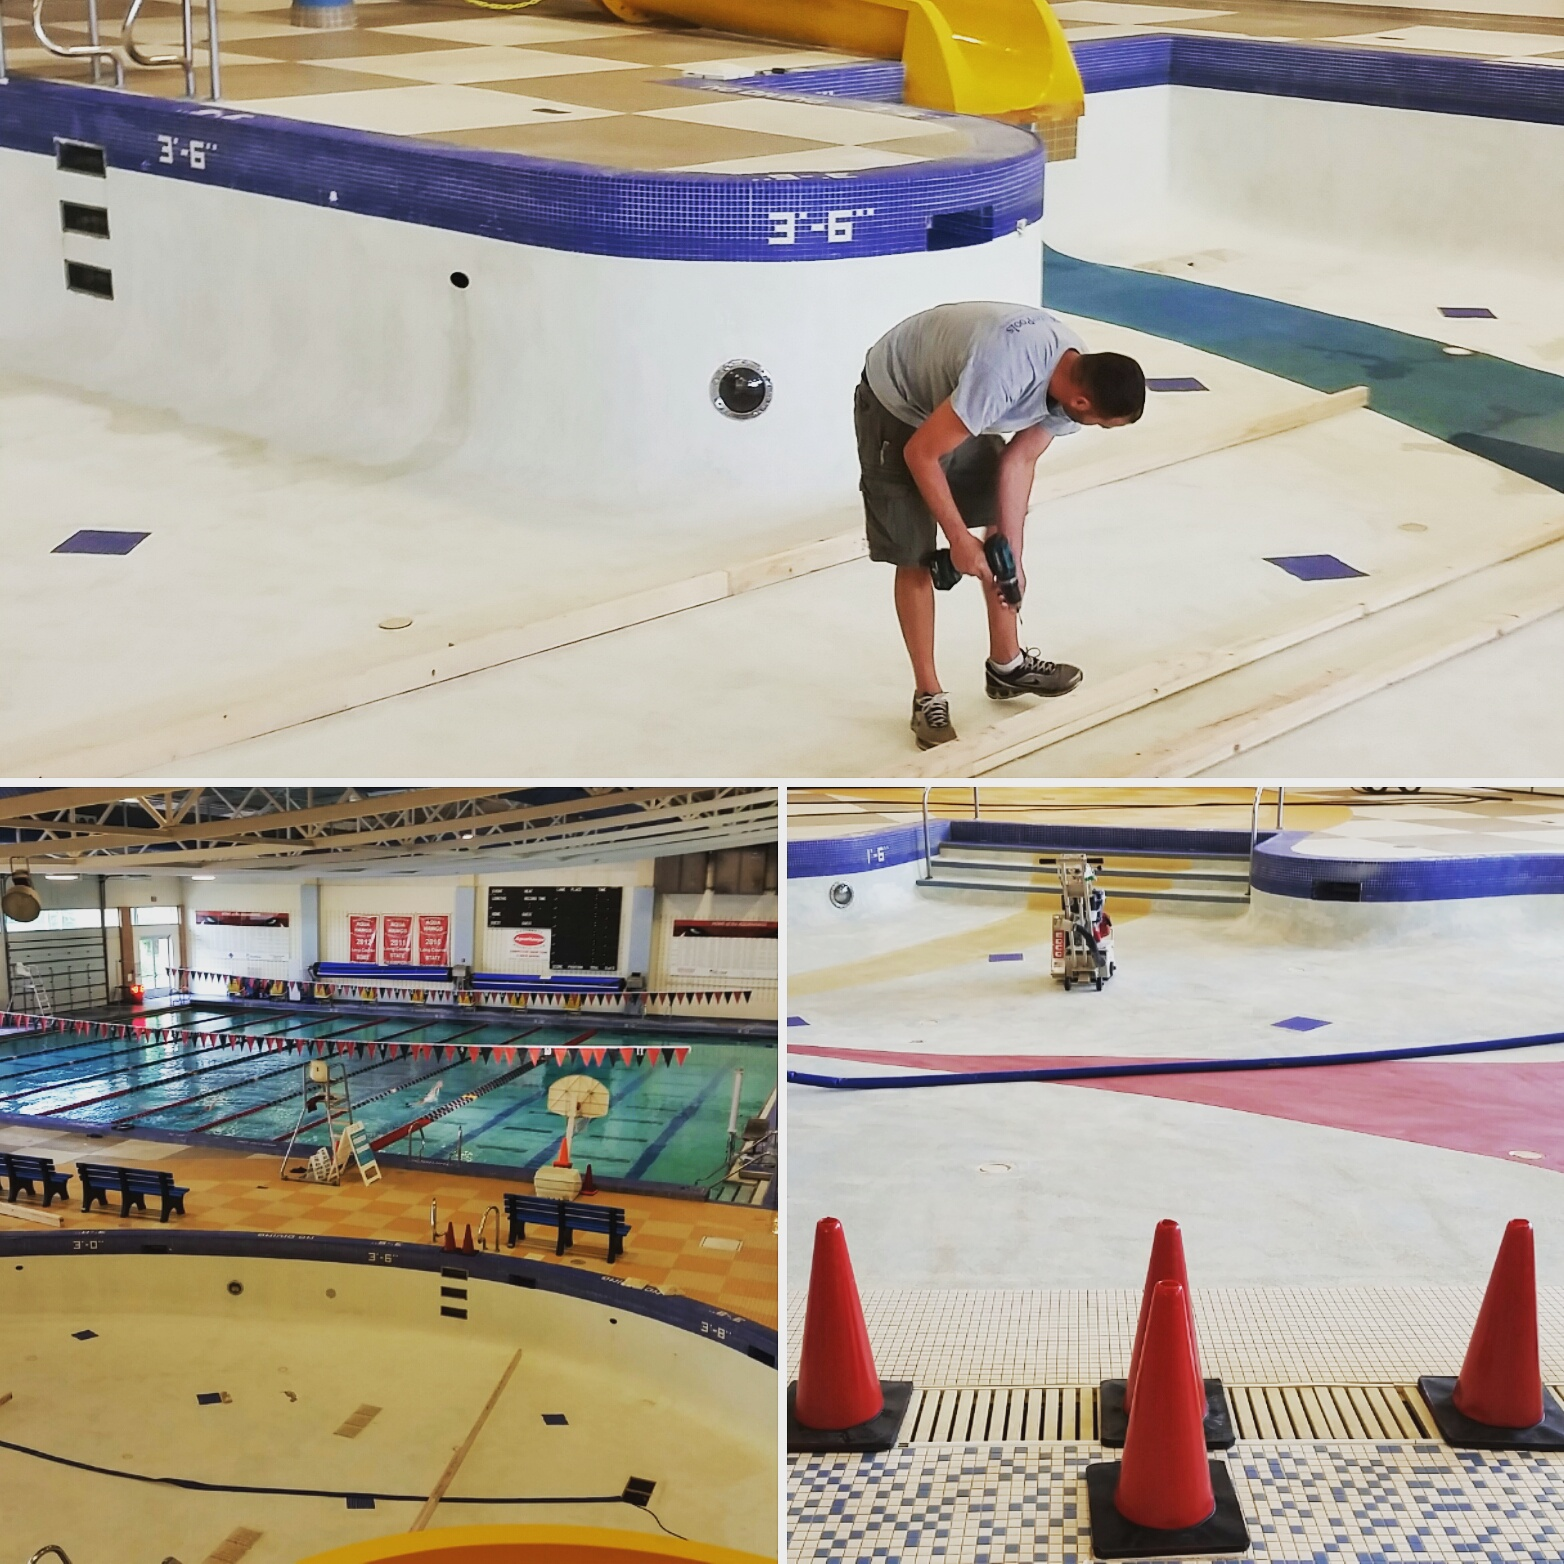 This is what the leisure pool currently looks like. Resurfacing the bottom requires us to drain the whole pool. That's a lot of water!